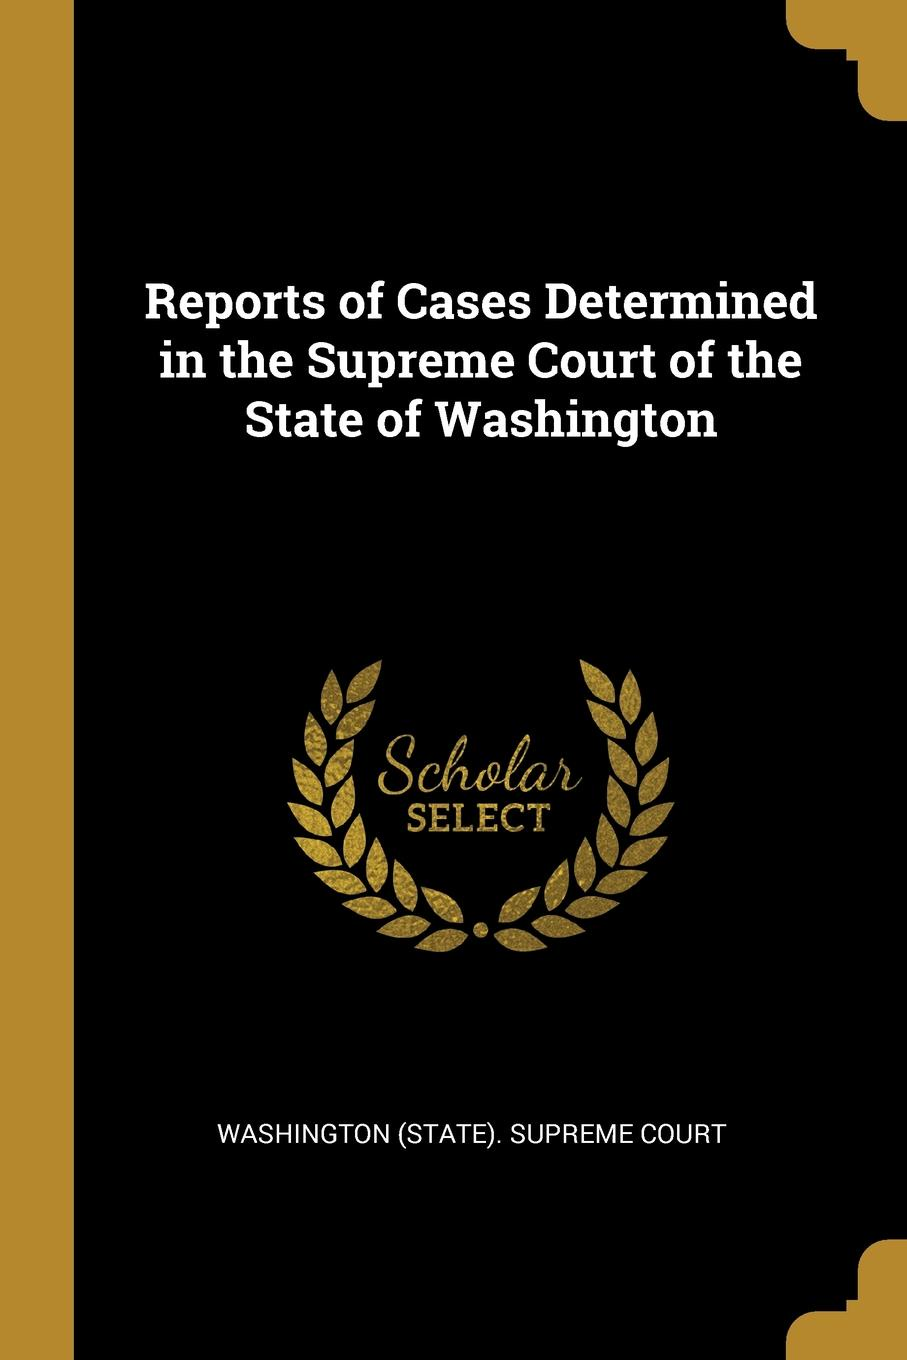 Washington (State). Supreme Court Reports of Cases Determined in the Supreme Court of the State of Washington